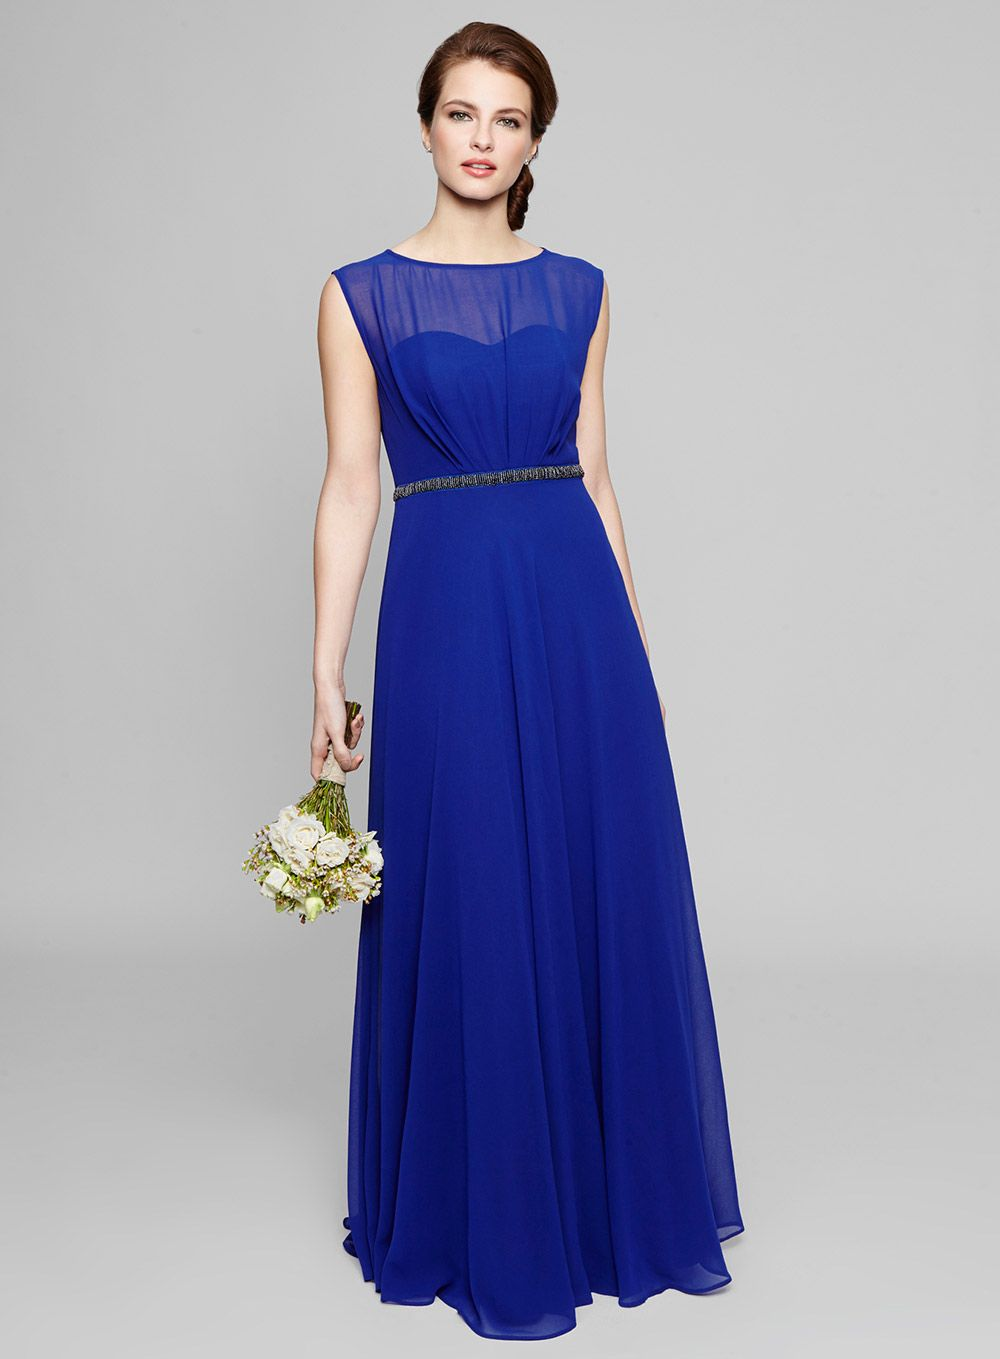 Cobalt Blue Bridesmaid Dresses Bright and Bold Gowns for Your Maids